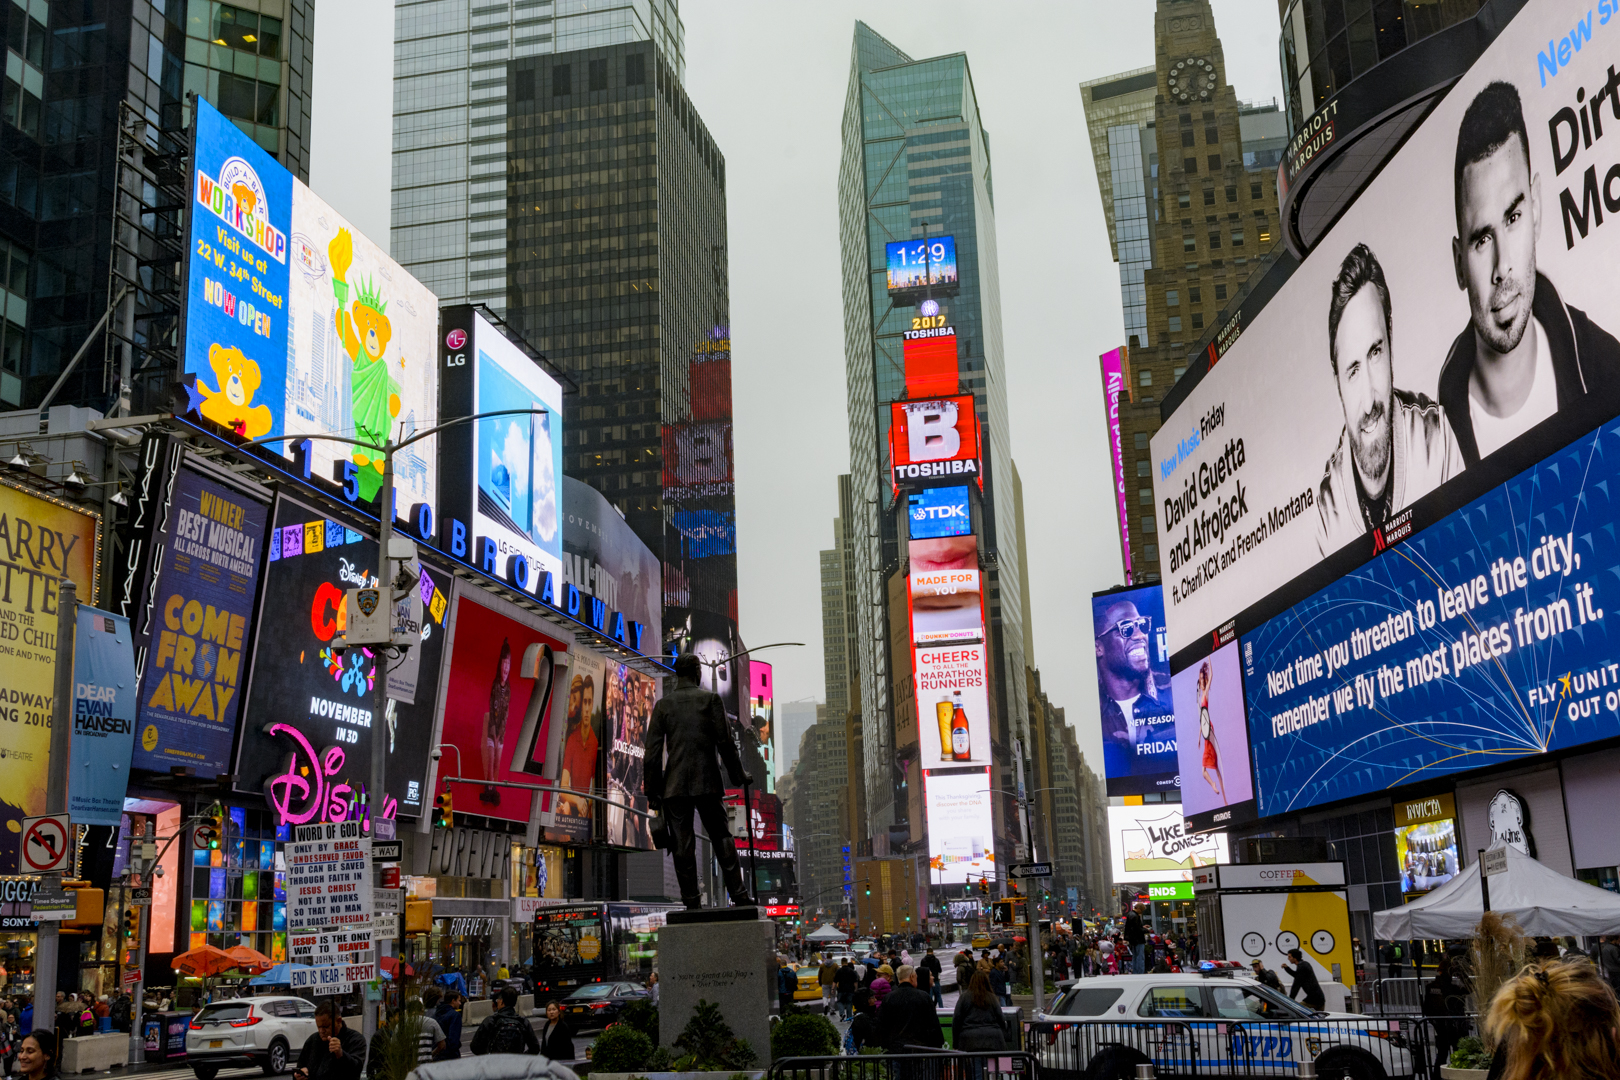 Times Square in Manhattan, NY